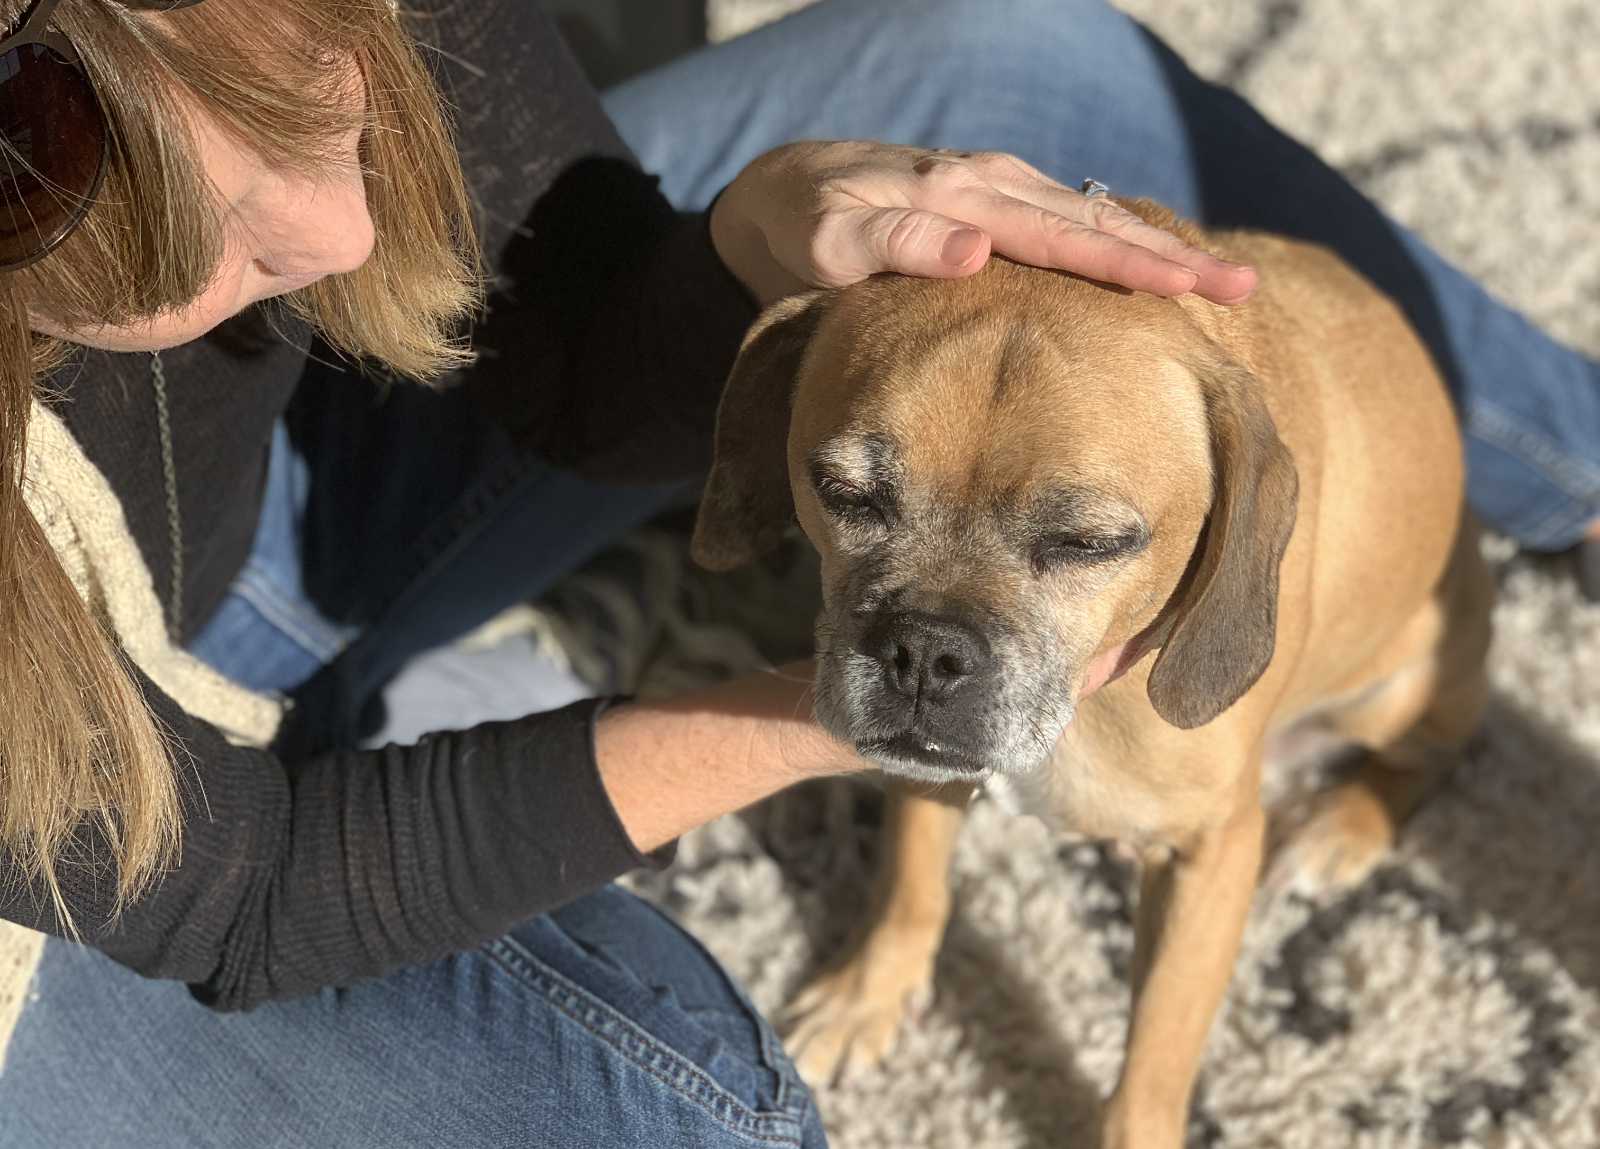 What is animal reiki? My view of animal reiki is a little different from most reiki practitioners. I share space with an animal and let the animal lead the session. I share what an intro to what I've learned in episode 41 of the For Animals. For Earth. podcast.